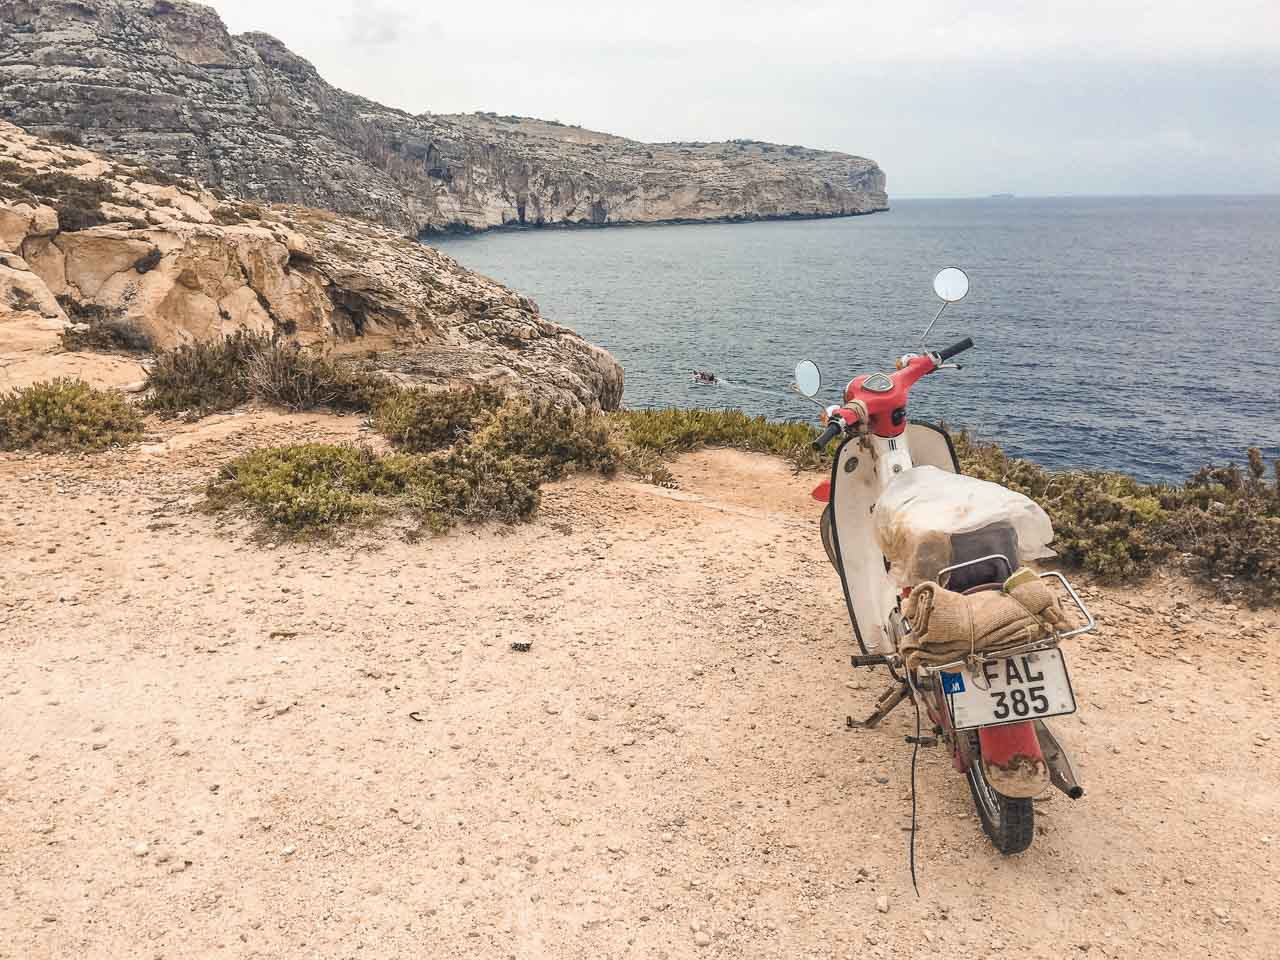 A scooter parked close to the edge of the Blue Grotto, Malta